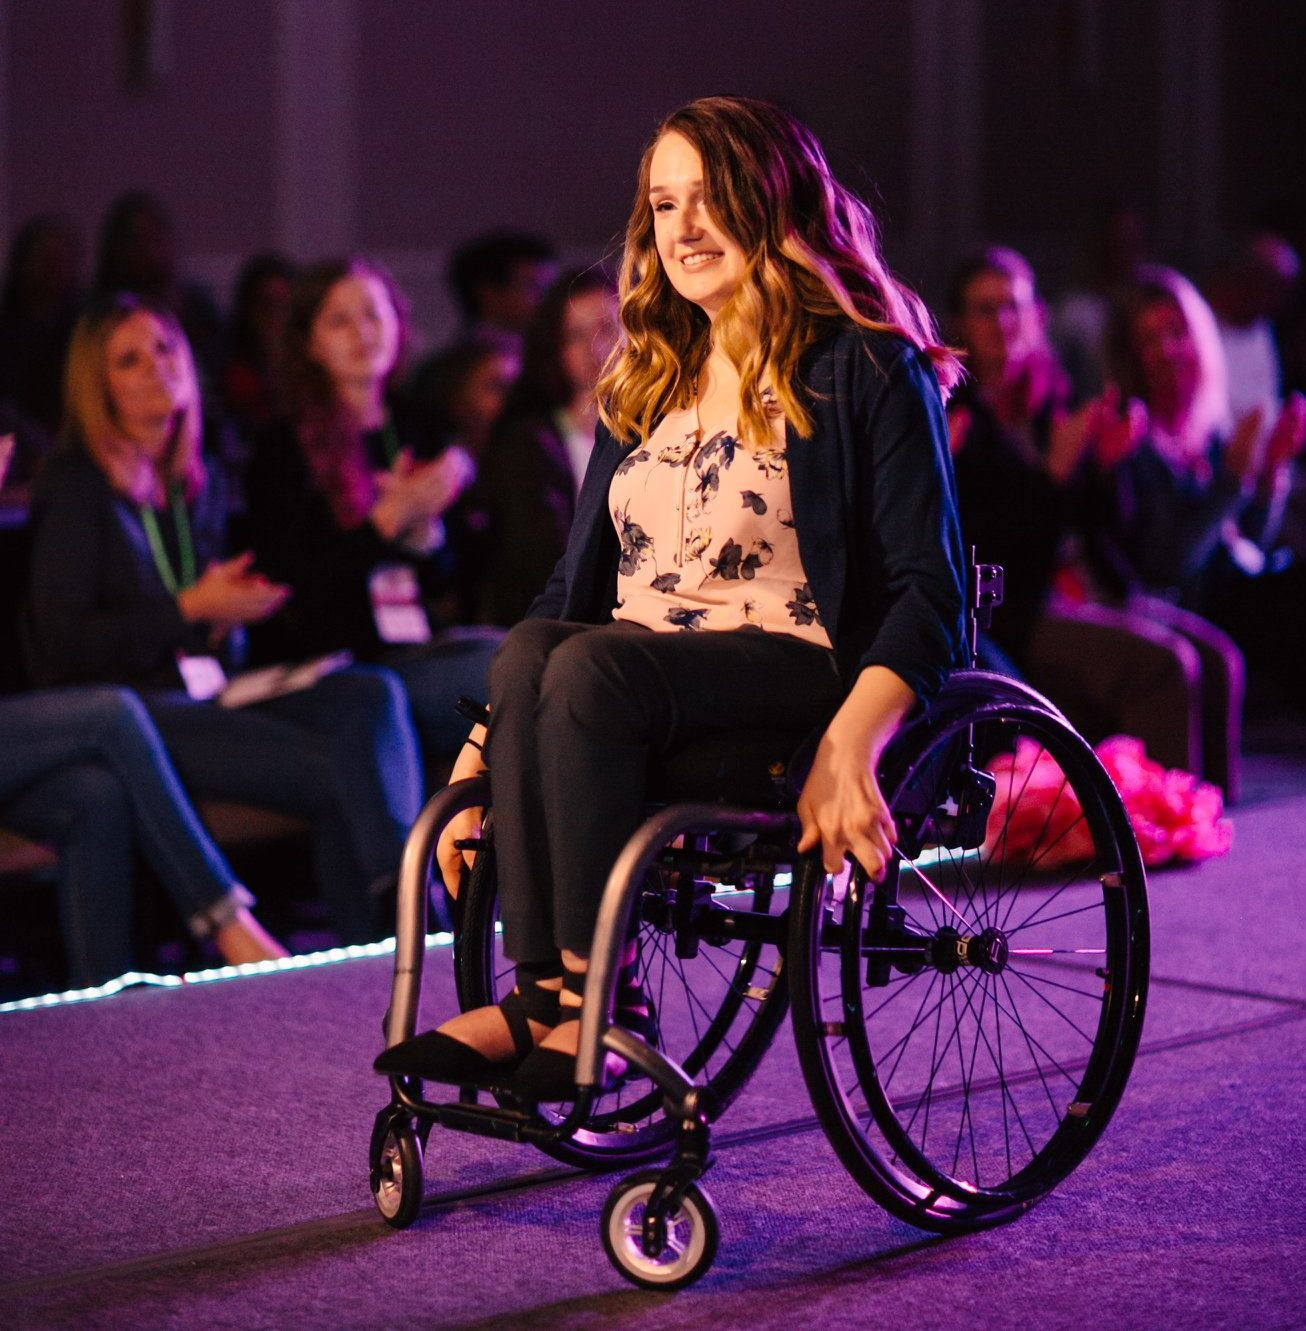 Shannon on the runway.